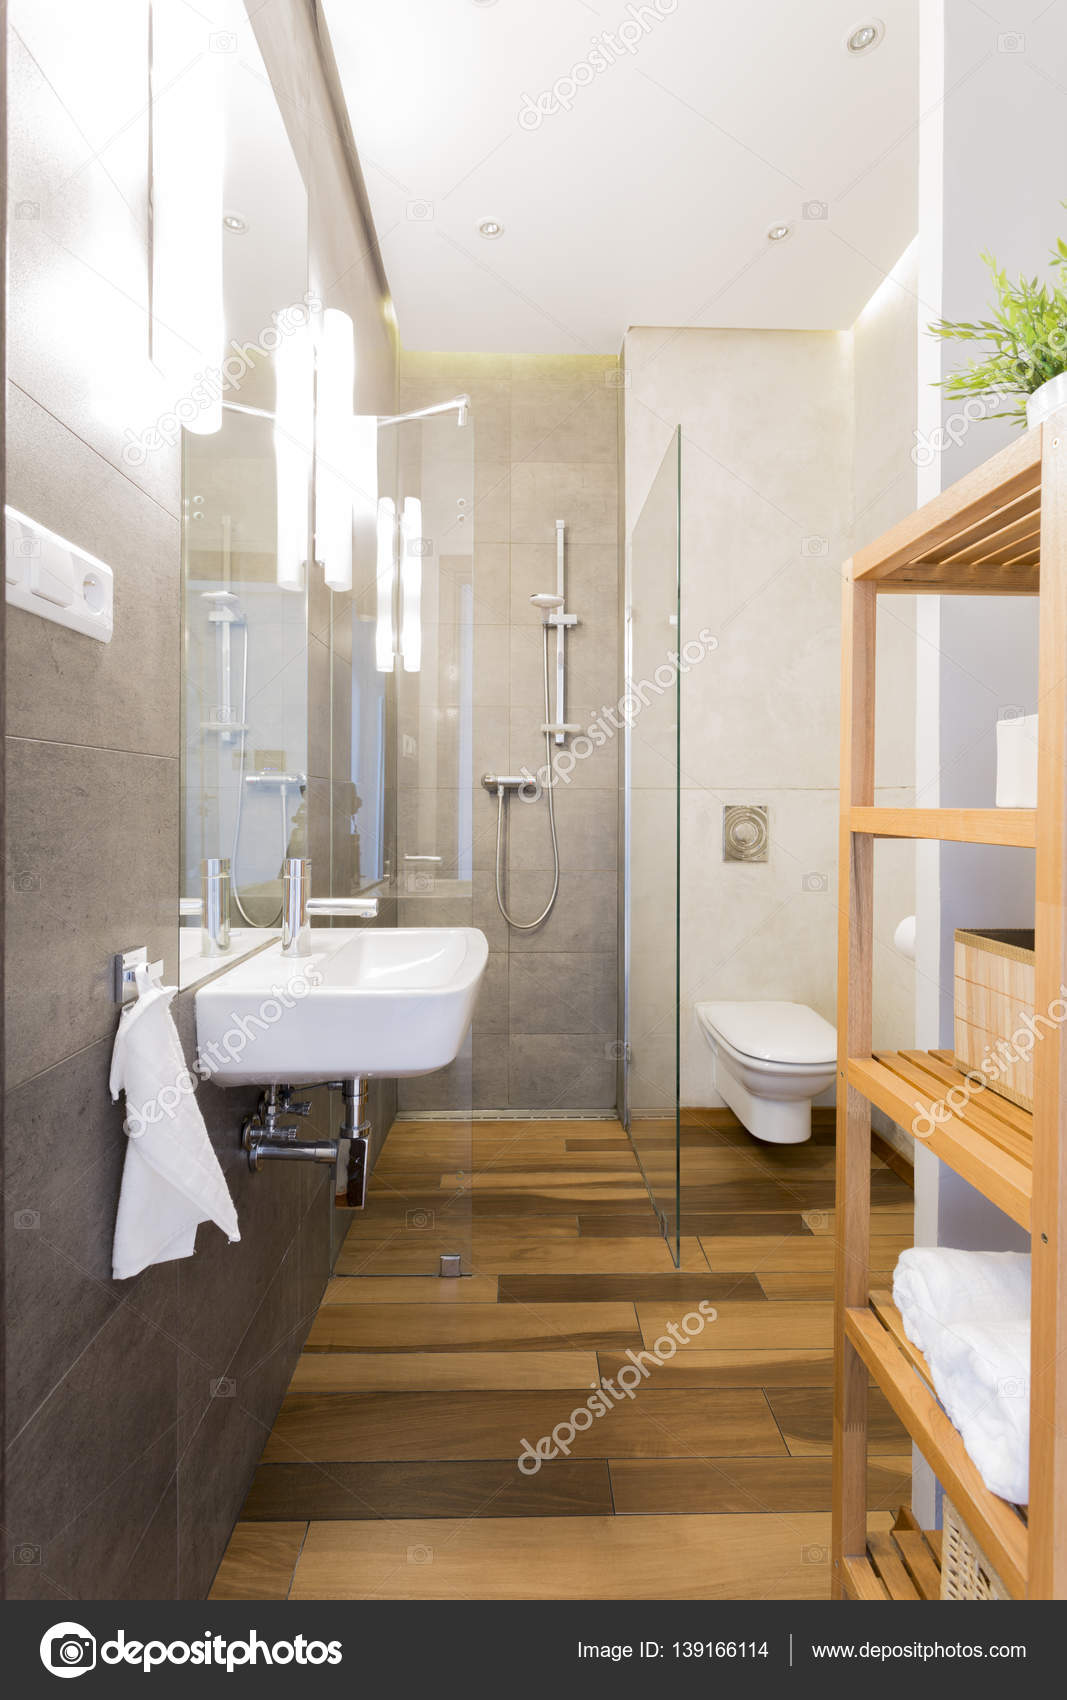 Narrow Loft Bathroom With Wooden Floor Stock Photo 139166114